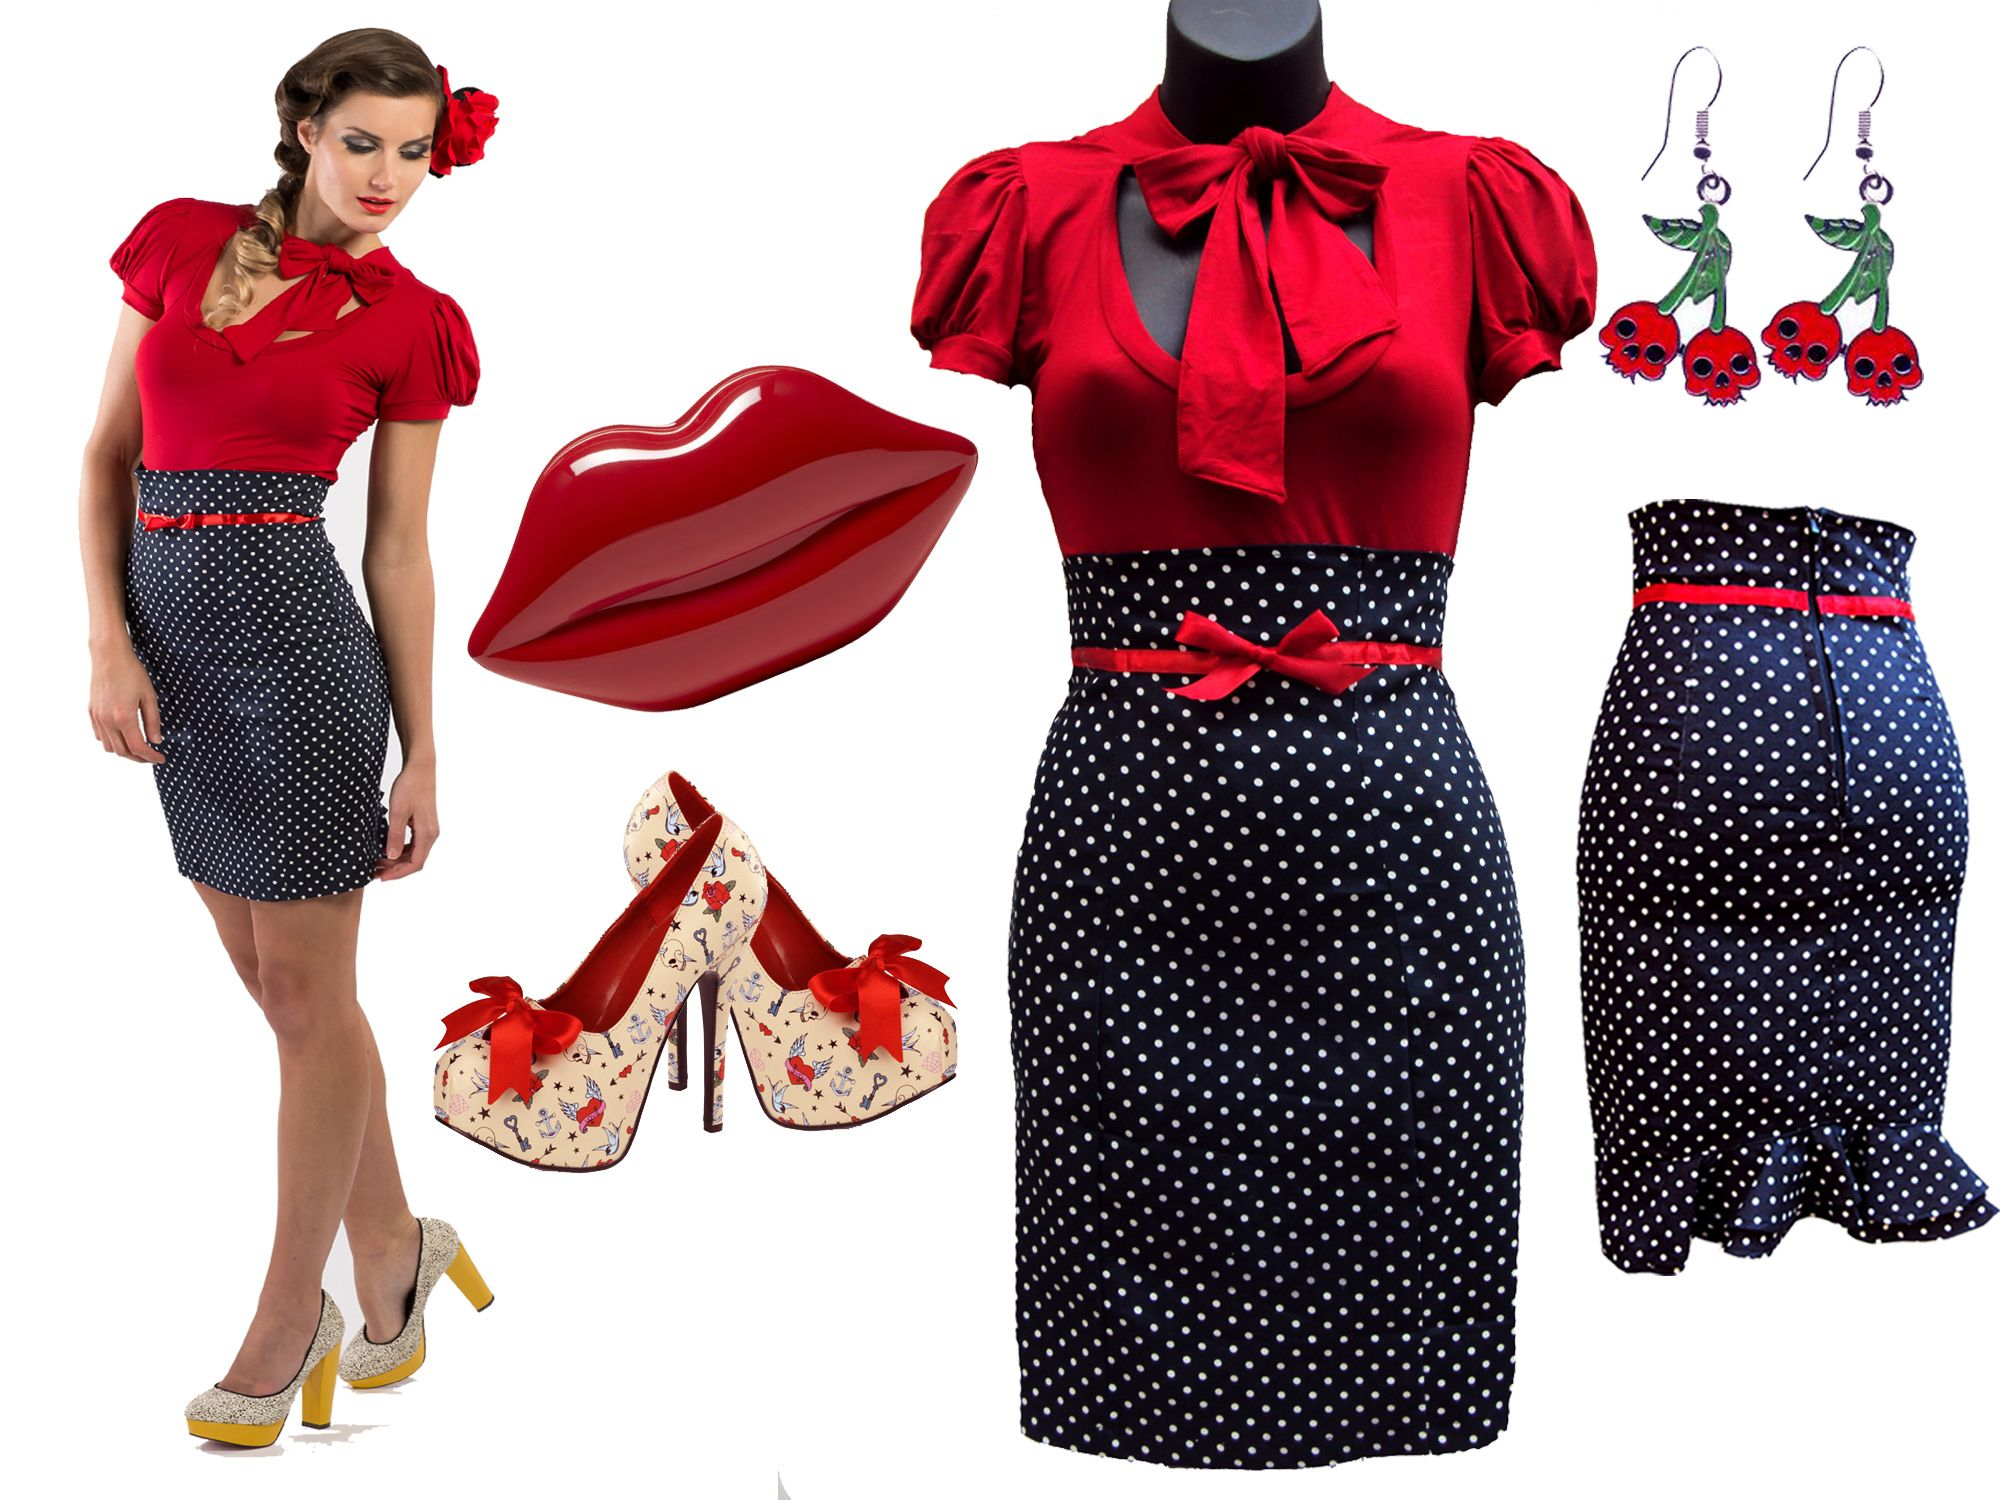 Fabulous and flirty outfit ideas to rock Spring days u003c3  sc 1 st  Pinterest & Fabulous and flirty outfit ideas to rock Spring days u003c3   Rockabilly ...